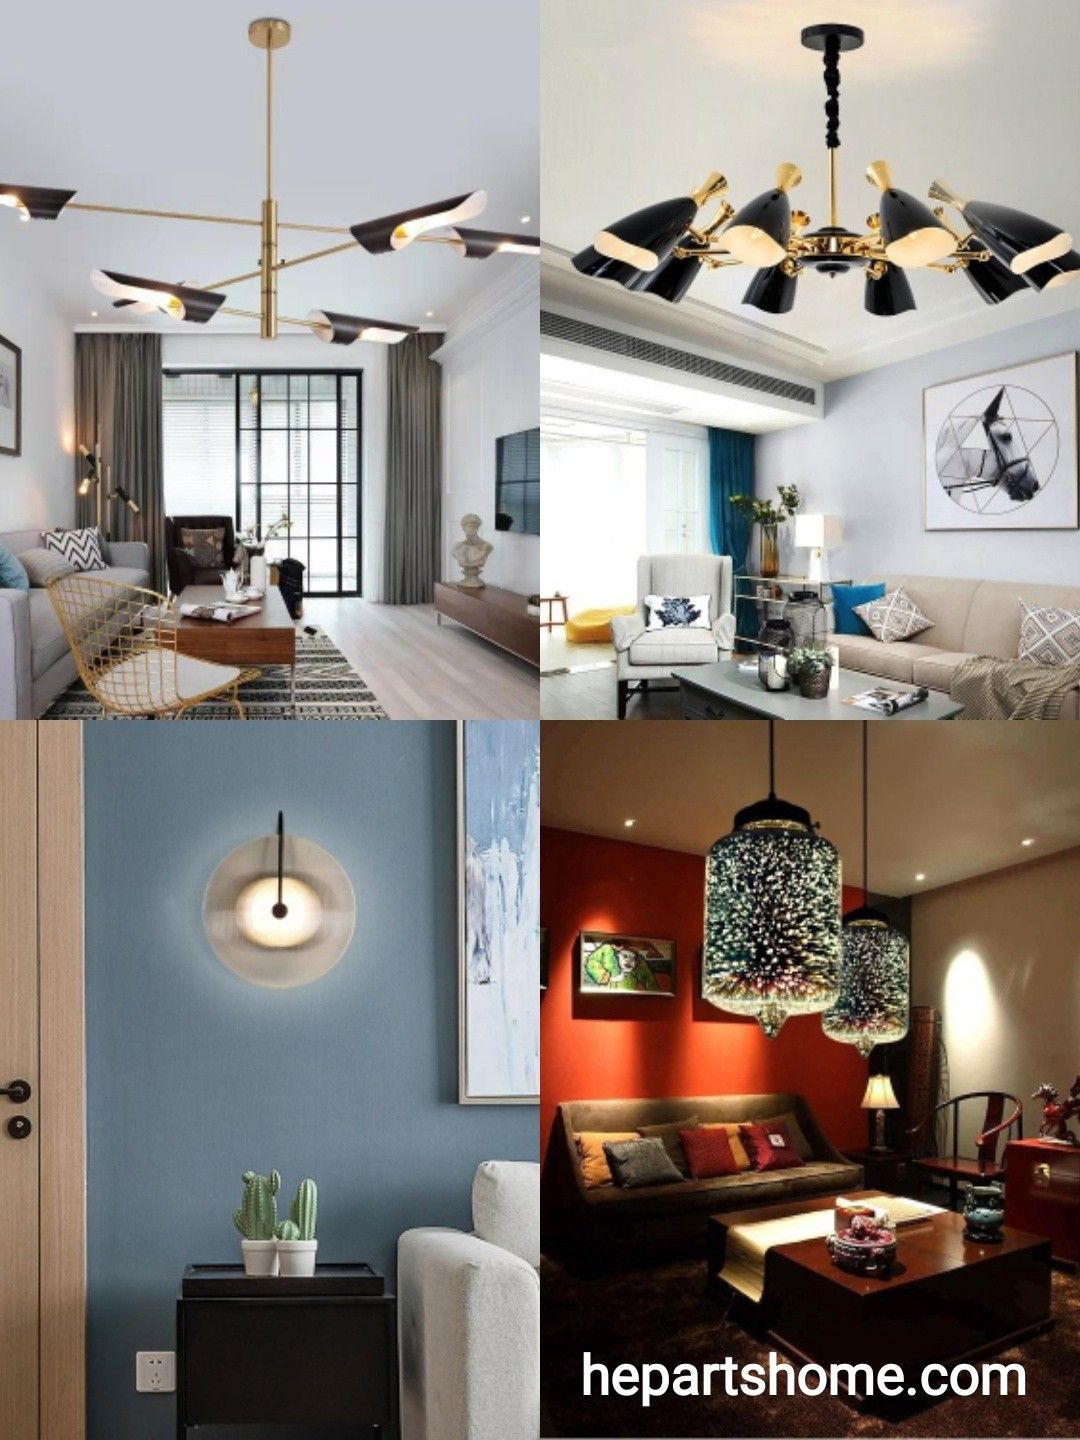 Are you looking for high quality lamps lights and lighting fixtures from manufacturers around the